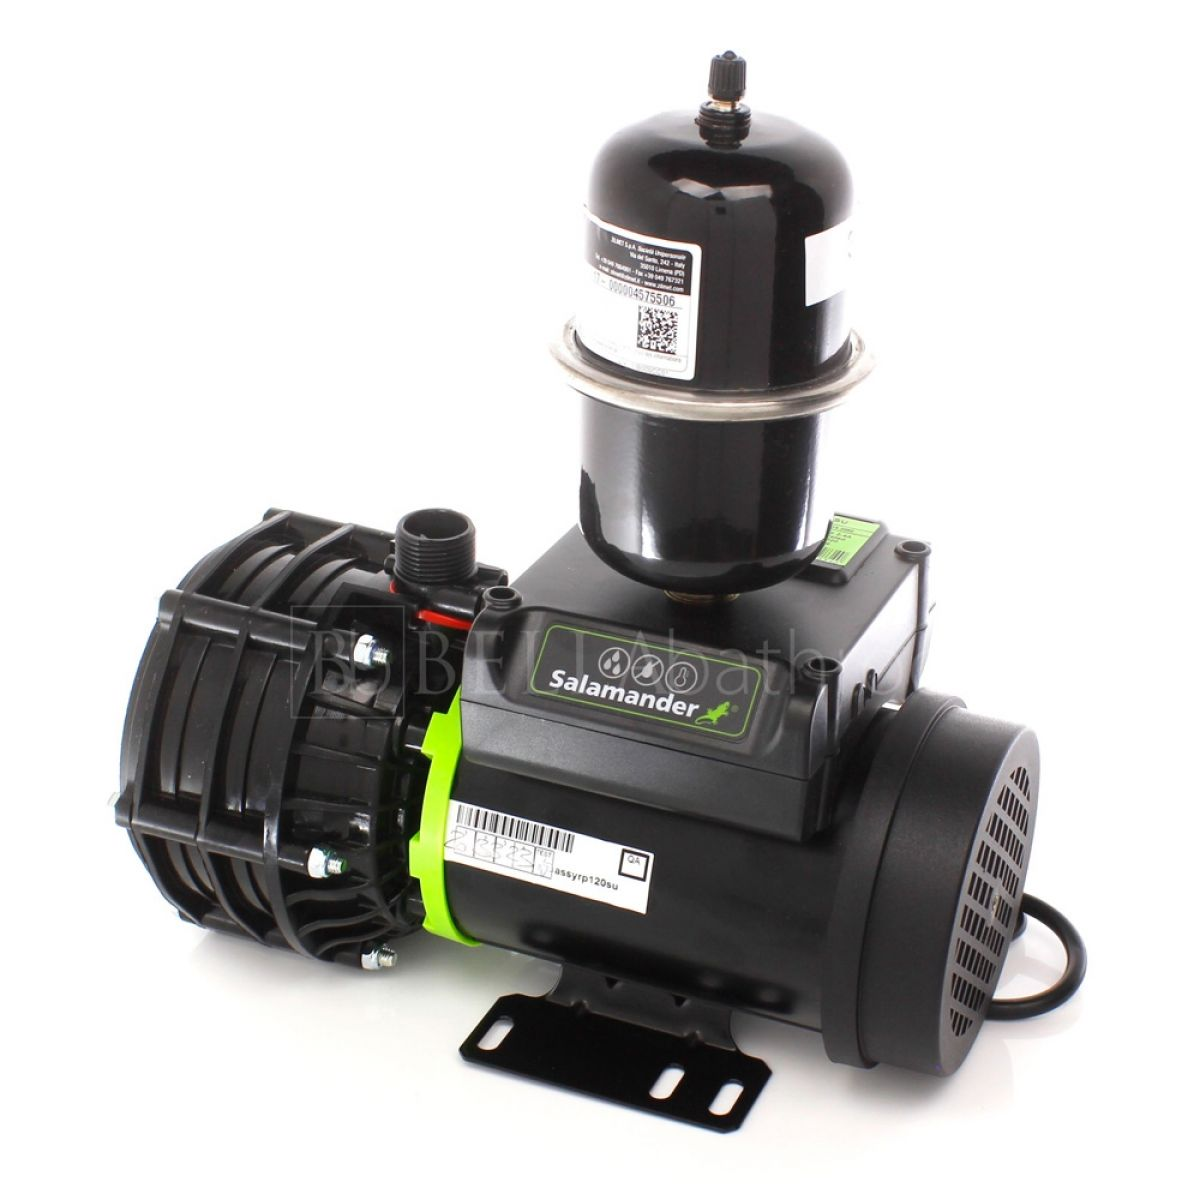 Salamander RP120SU 3.6 Bar Single Universal Whole House Shower Pump